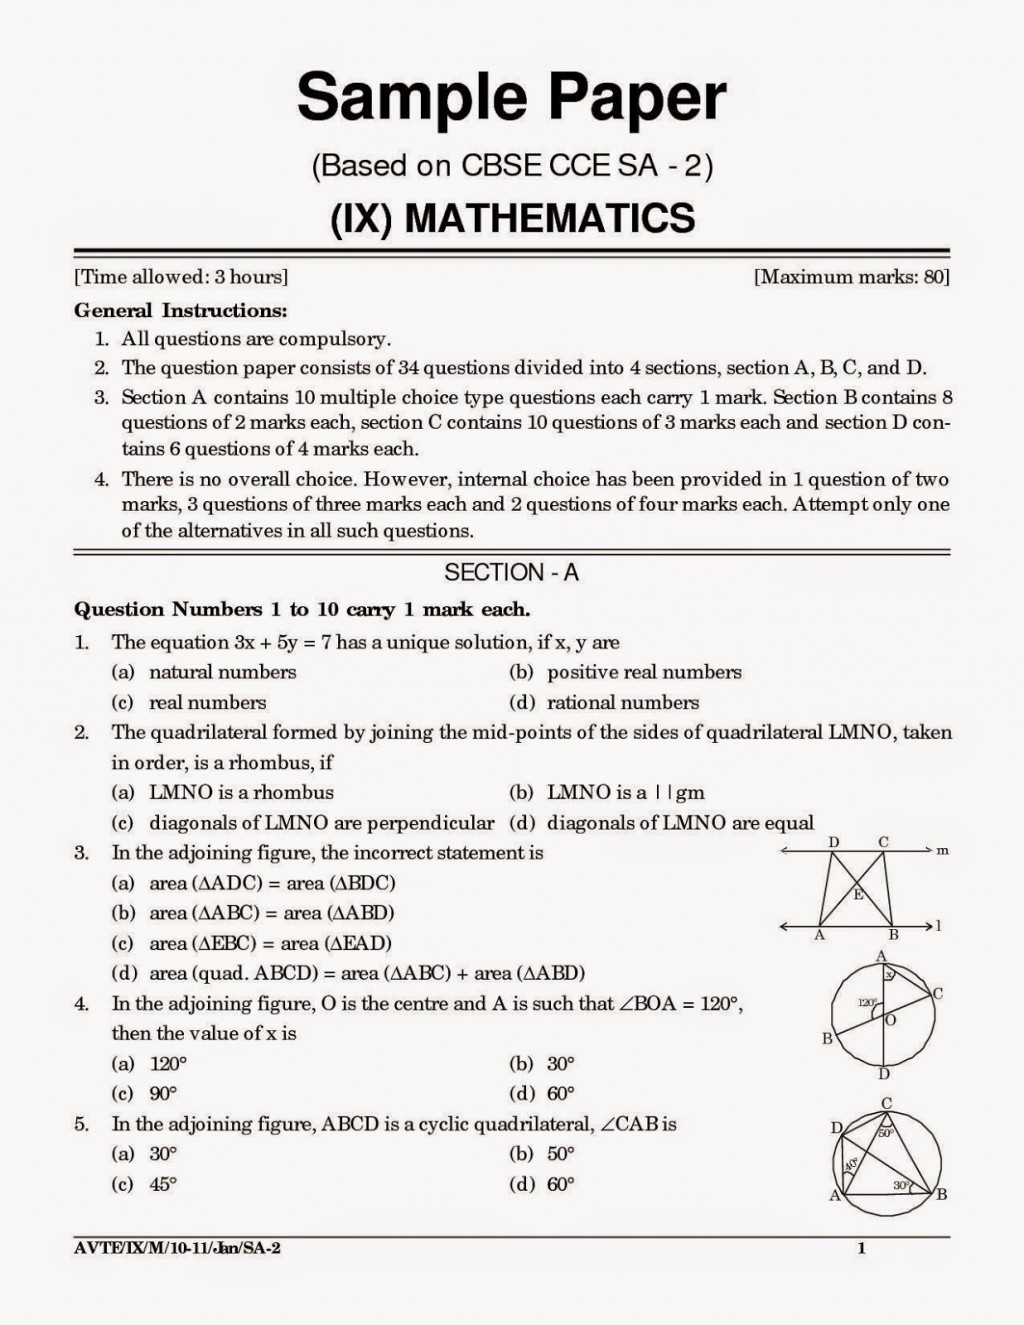 019 Sample Argumentative Essay Cbse20sample20papers20for20class201020mathematics20and20science Jpg Awful Outline Pdf Mla Format Grade 6 Large